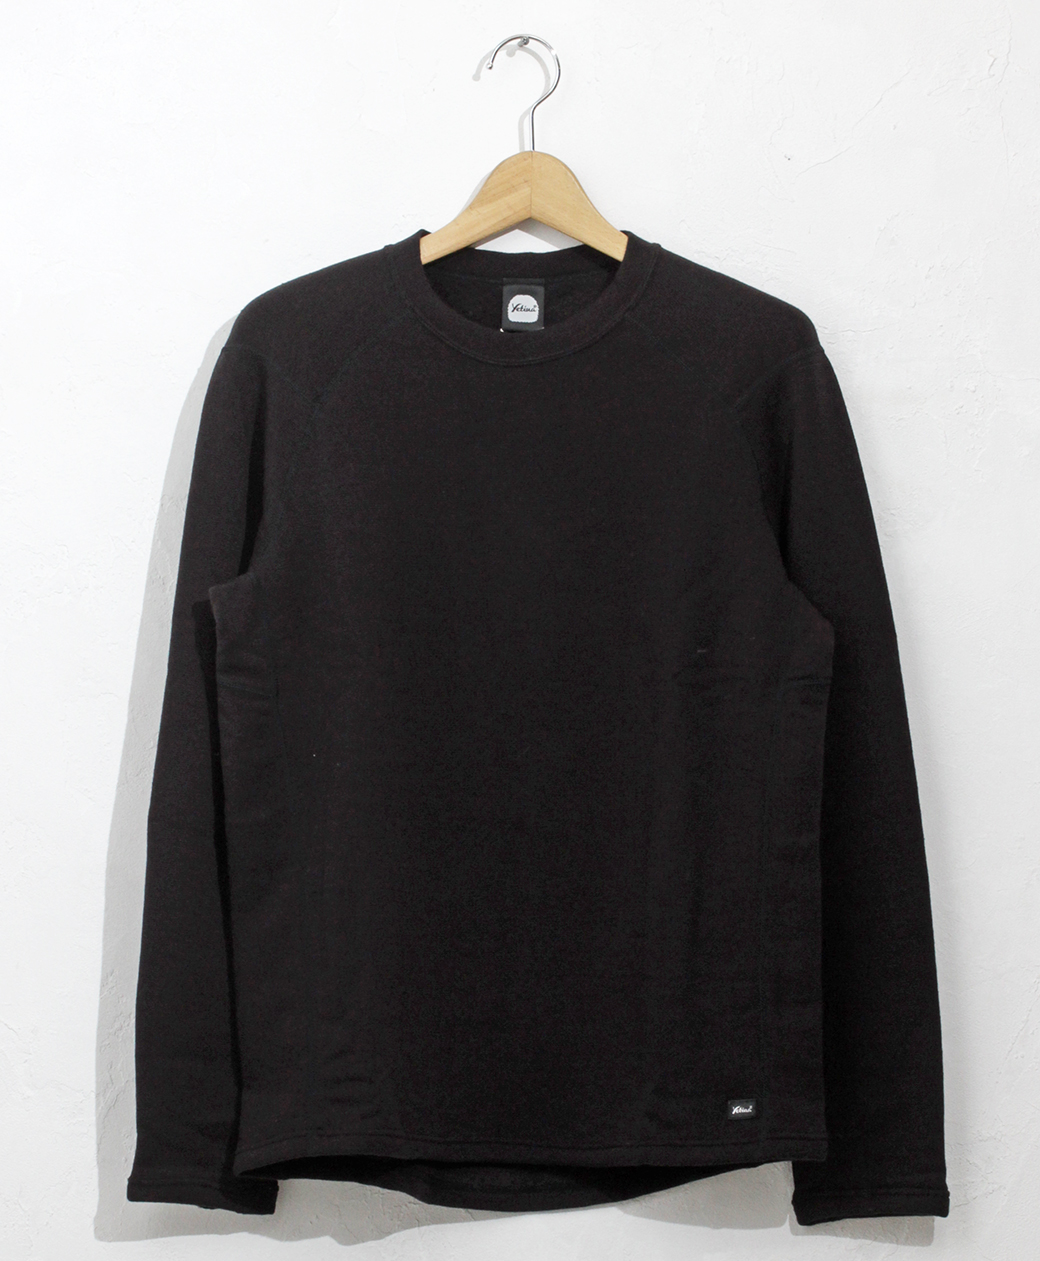 yetina light crew neck(black)